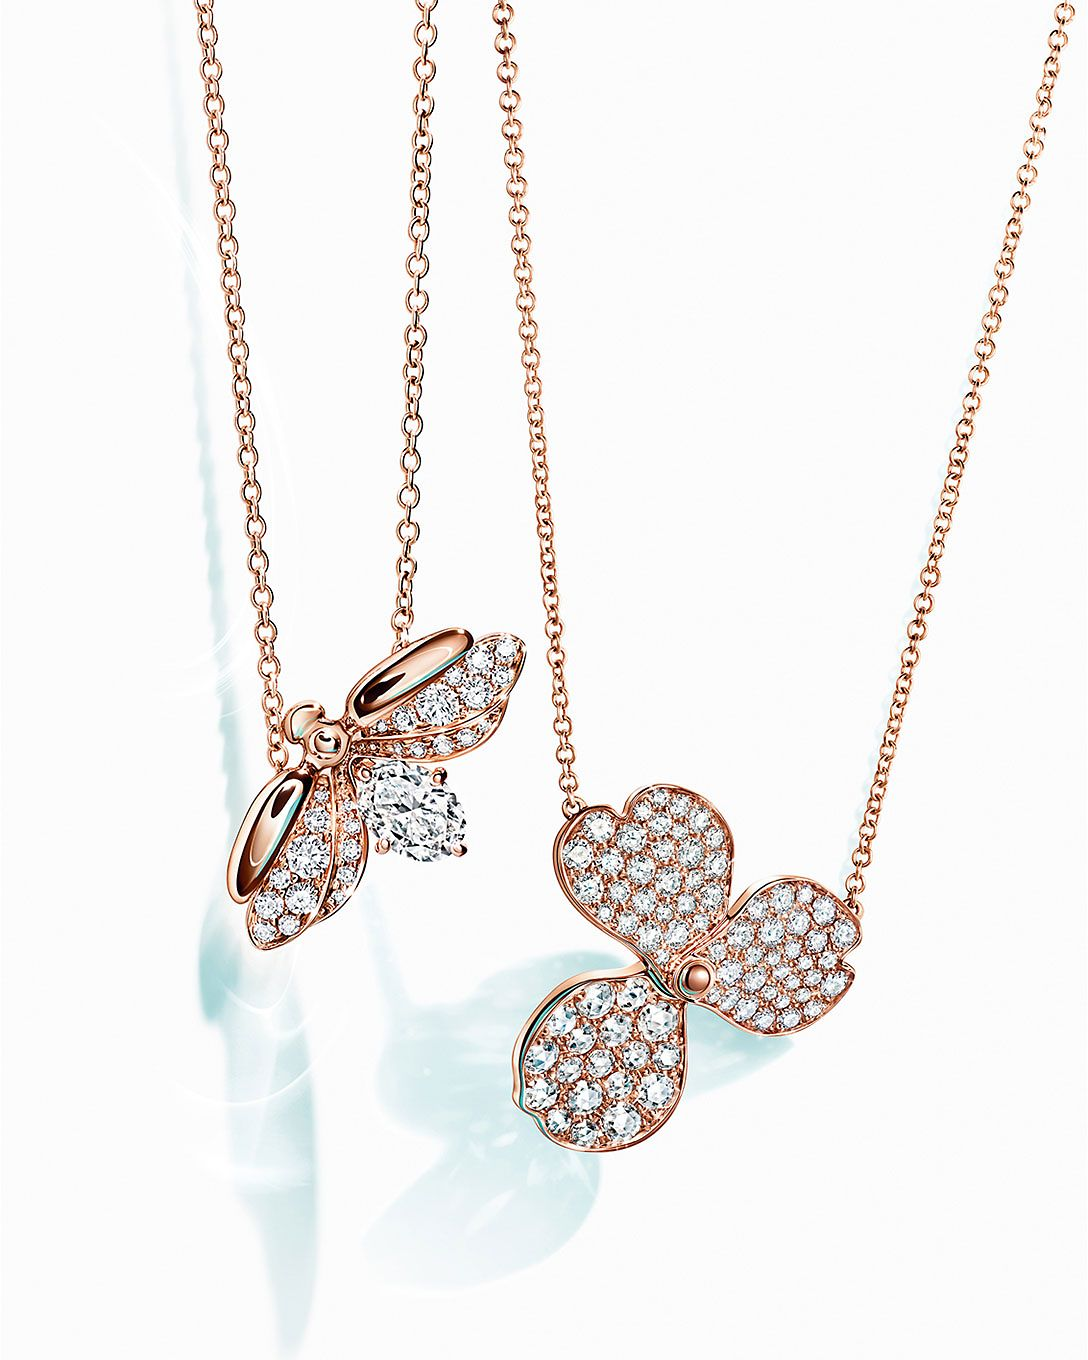 Tiffany & Co  Official | Luxury Jewelry, Gifts & Accessories